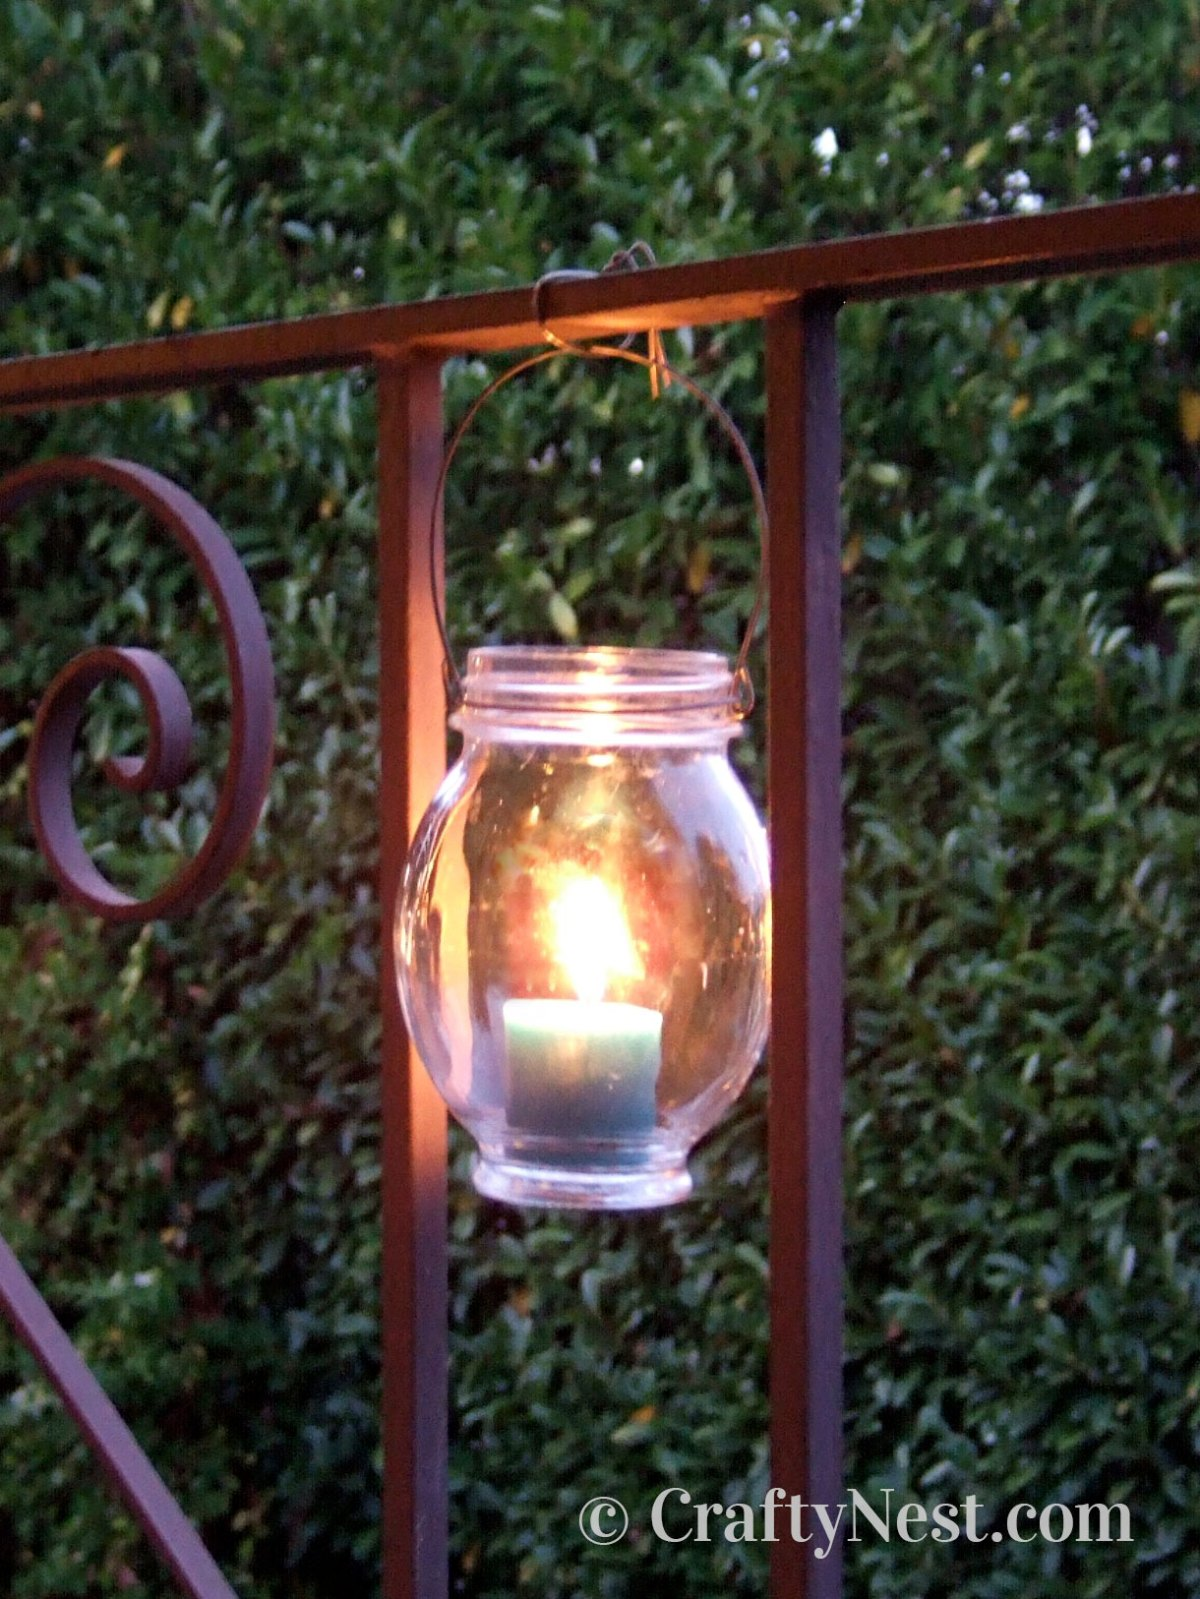 Hanging the jar from a railing with wire, photo